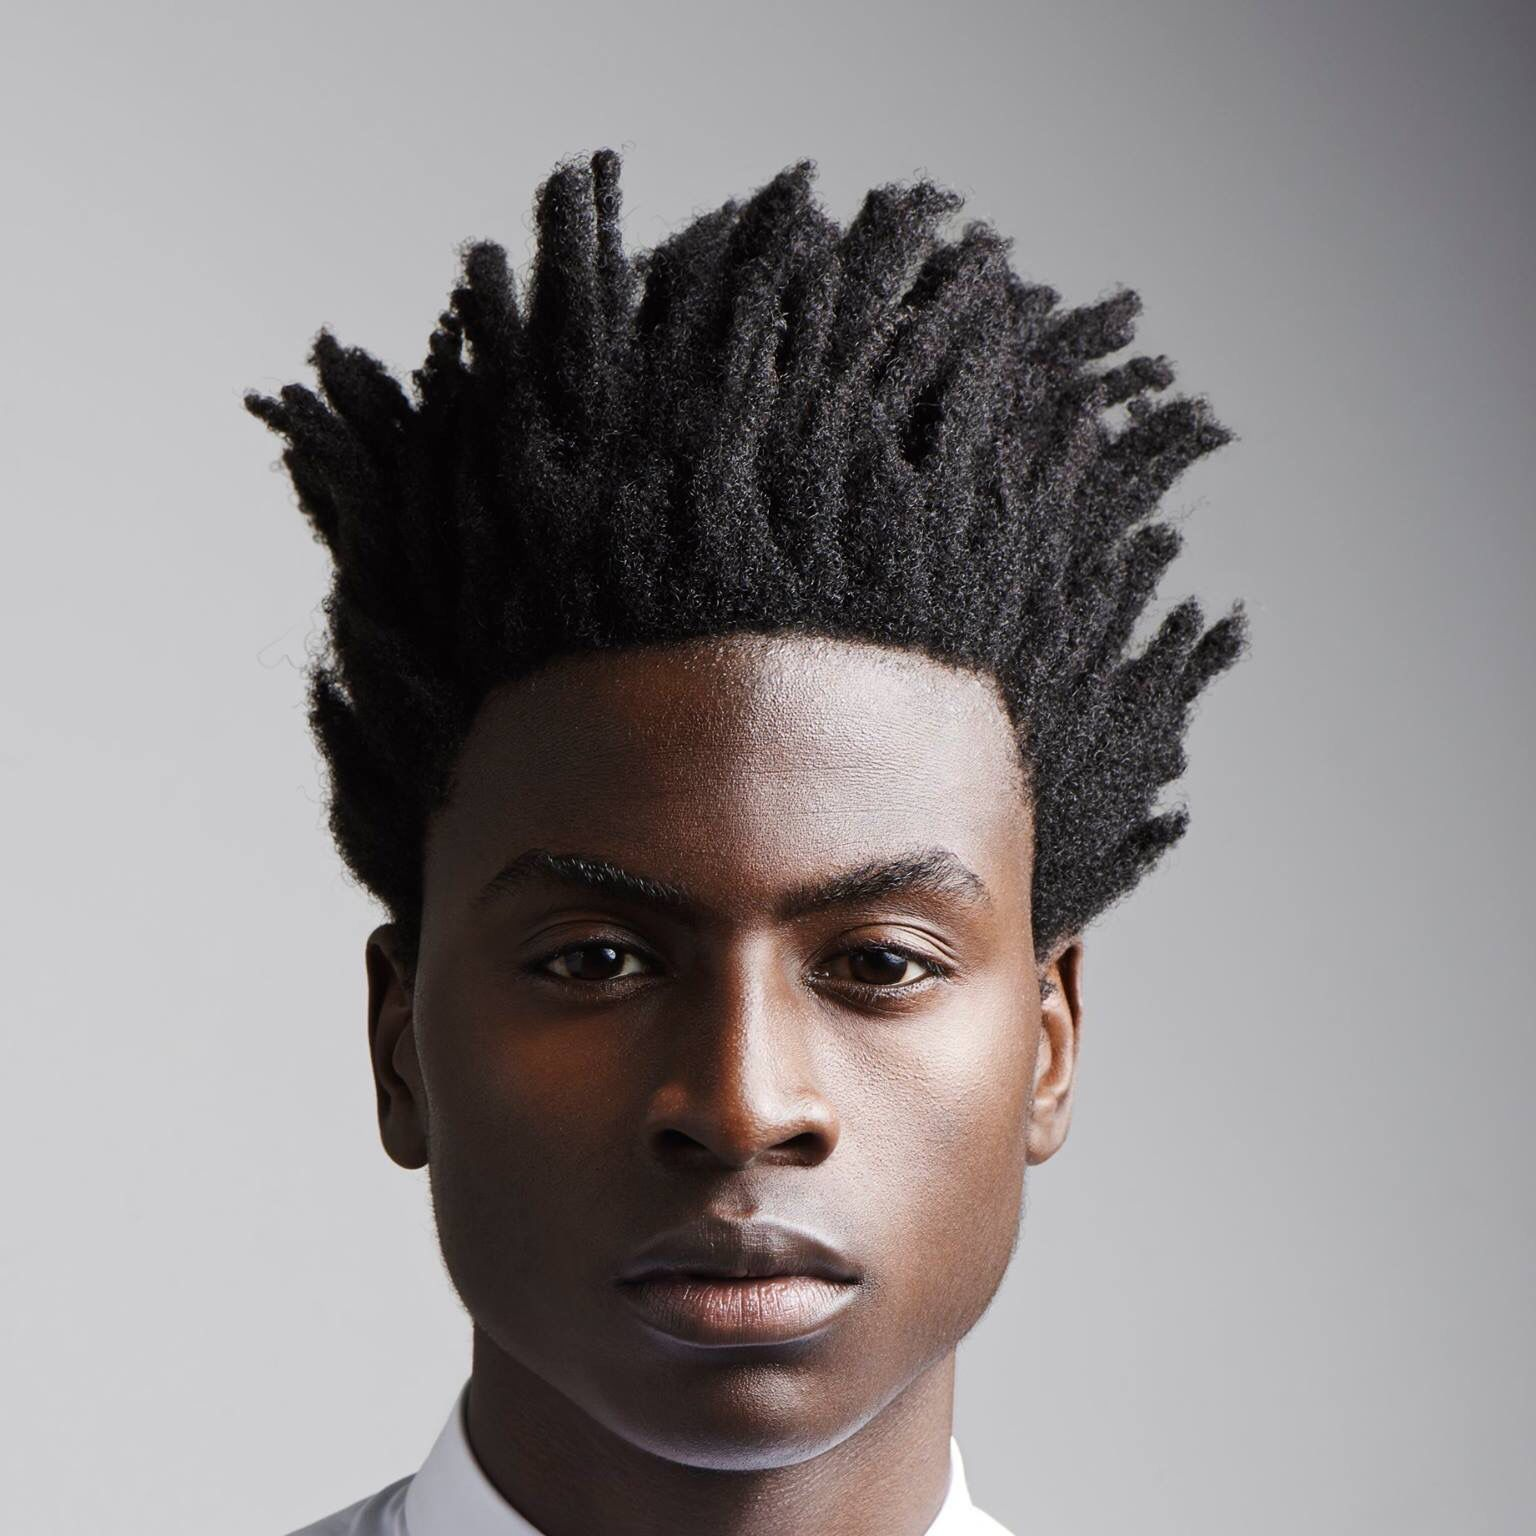 Aldiouma fofana natural hair men pinterest locs hair style